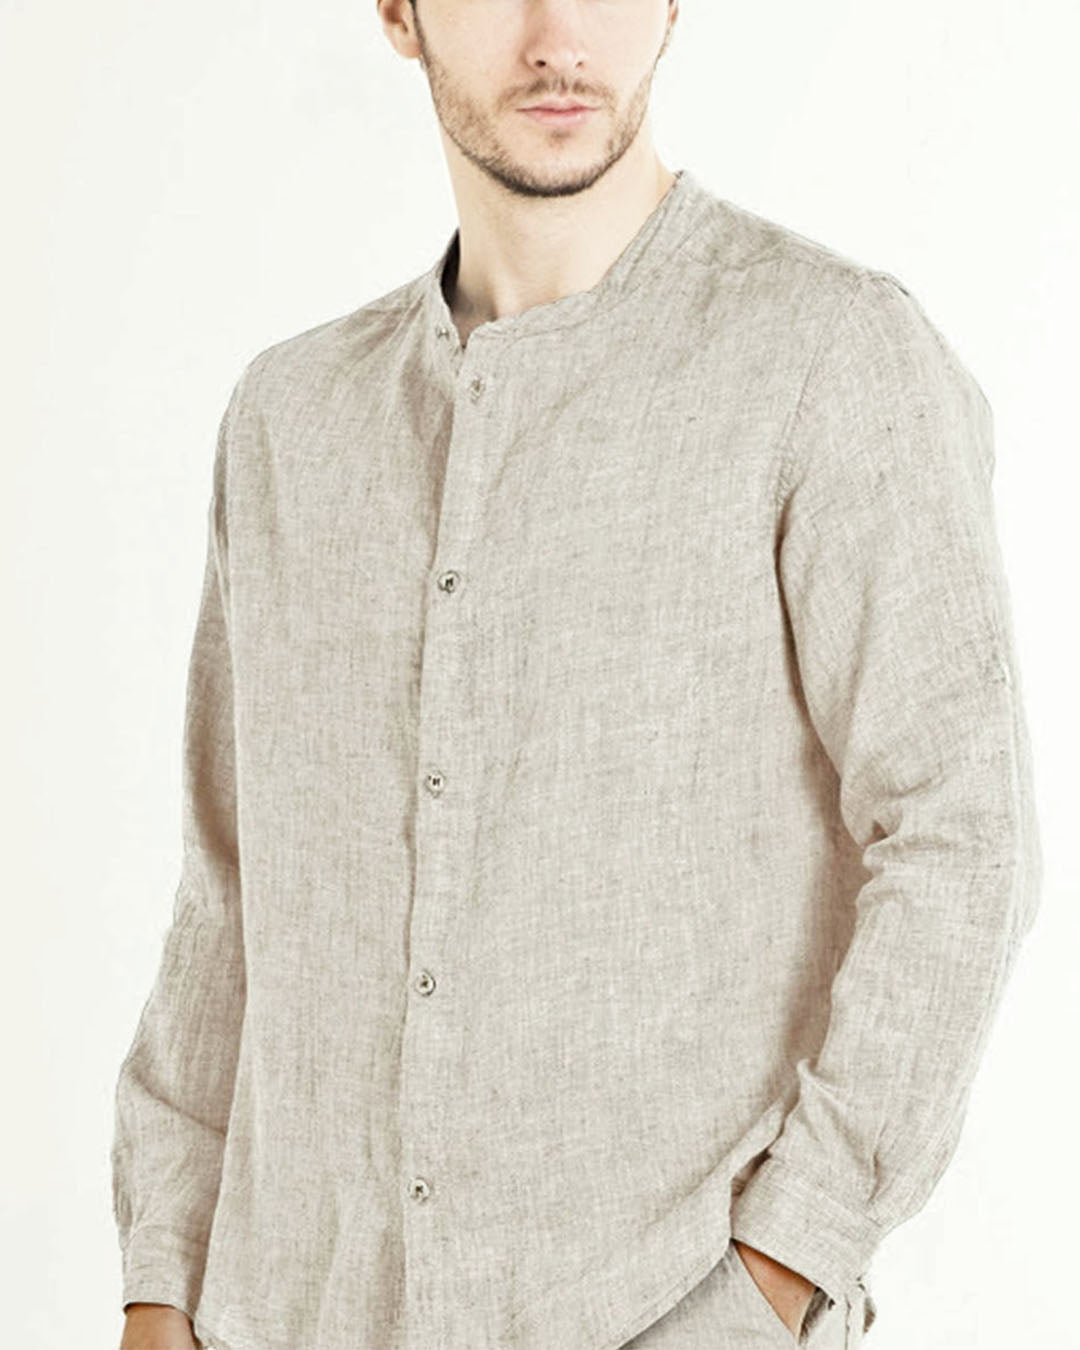 Linen shirt in natural colour with band collar